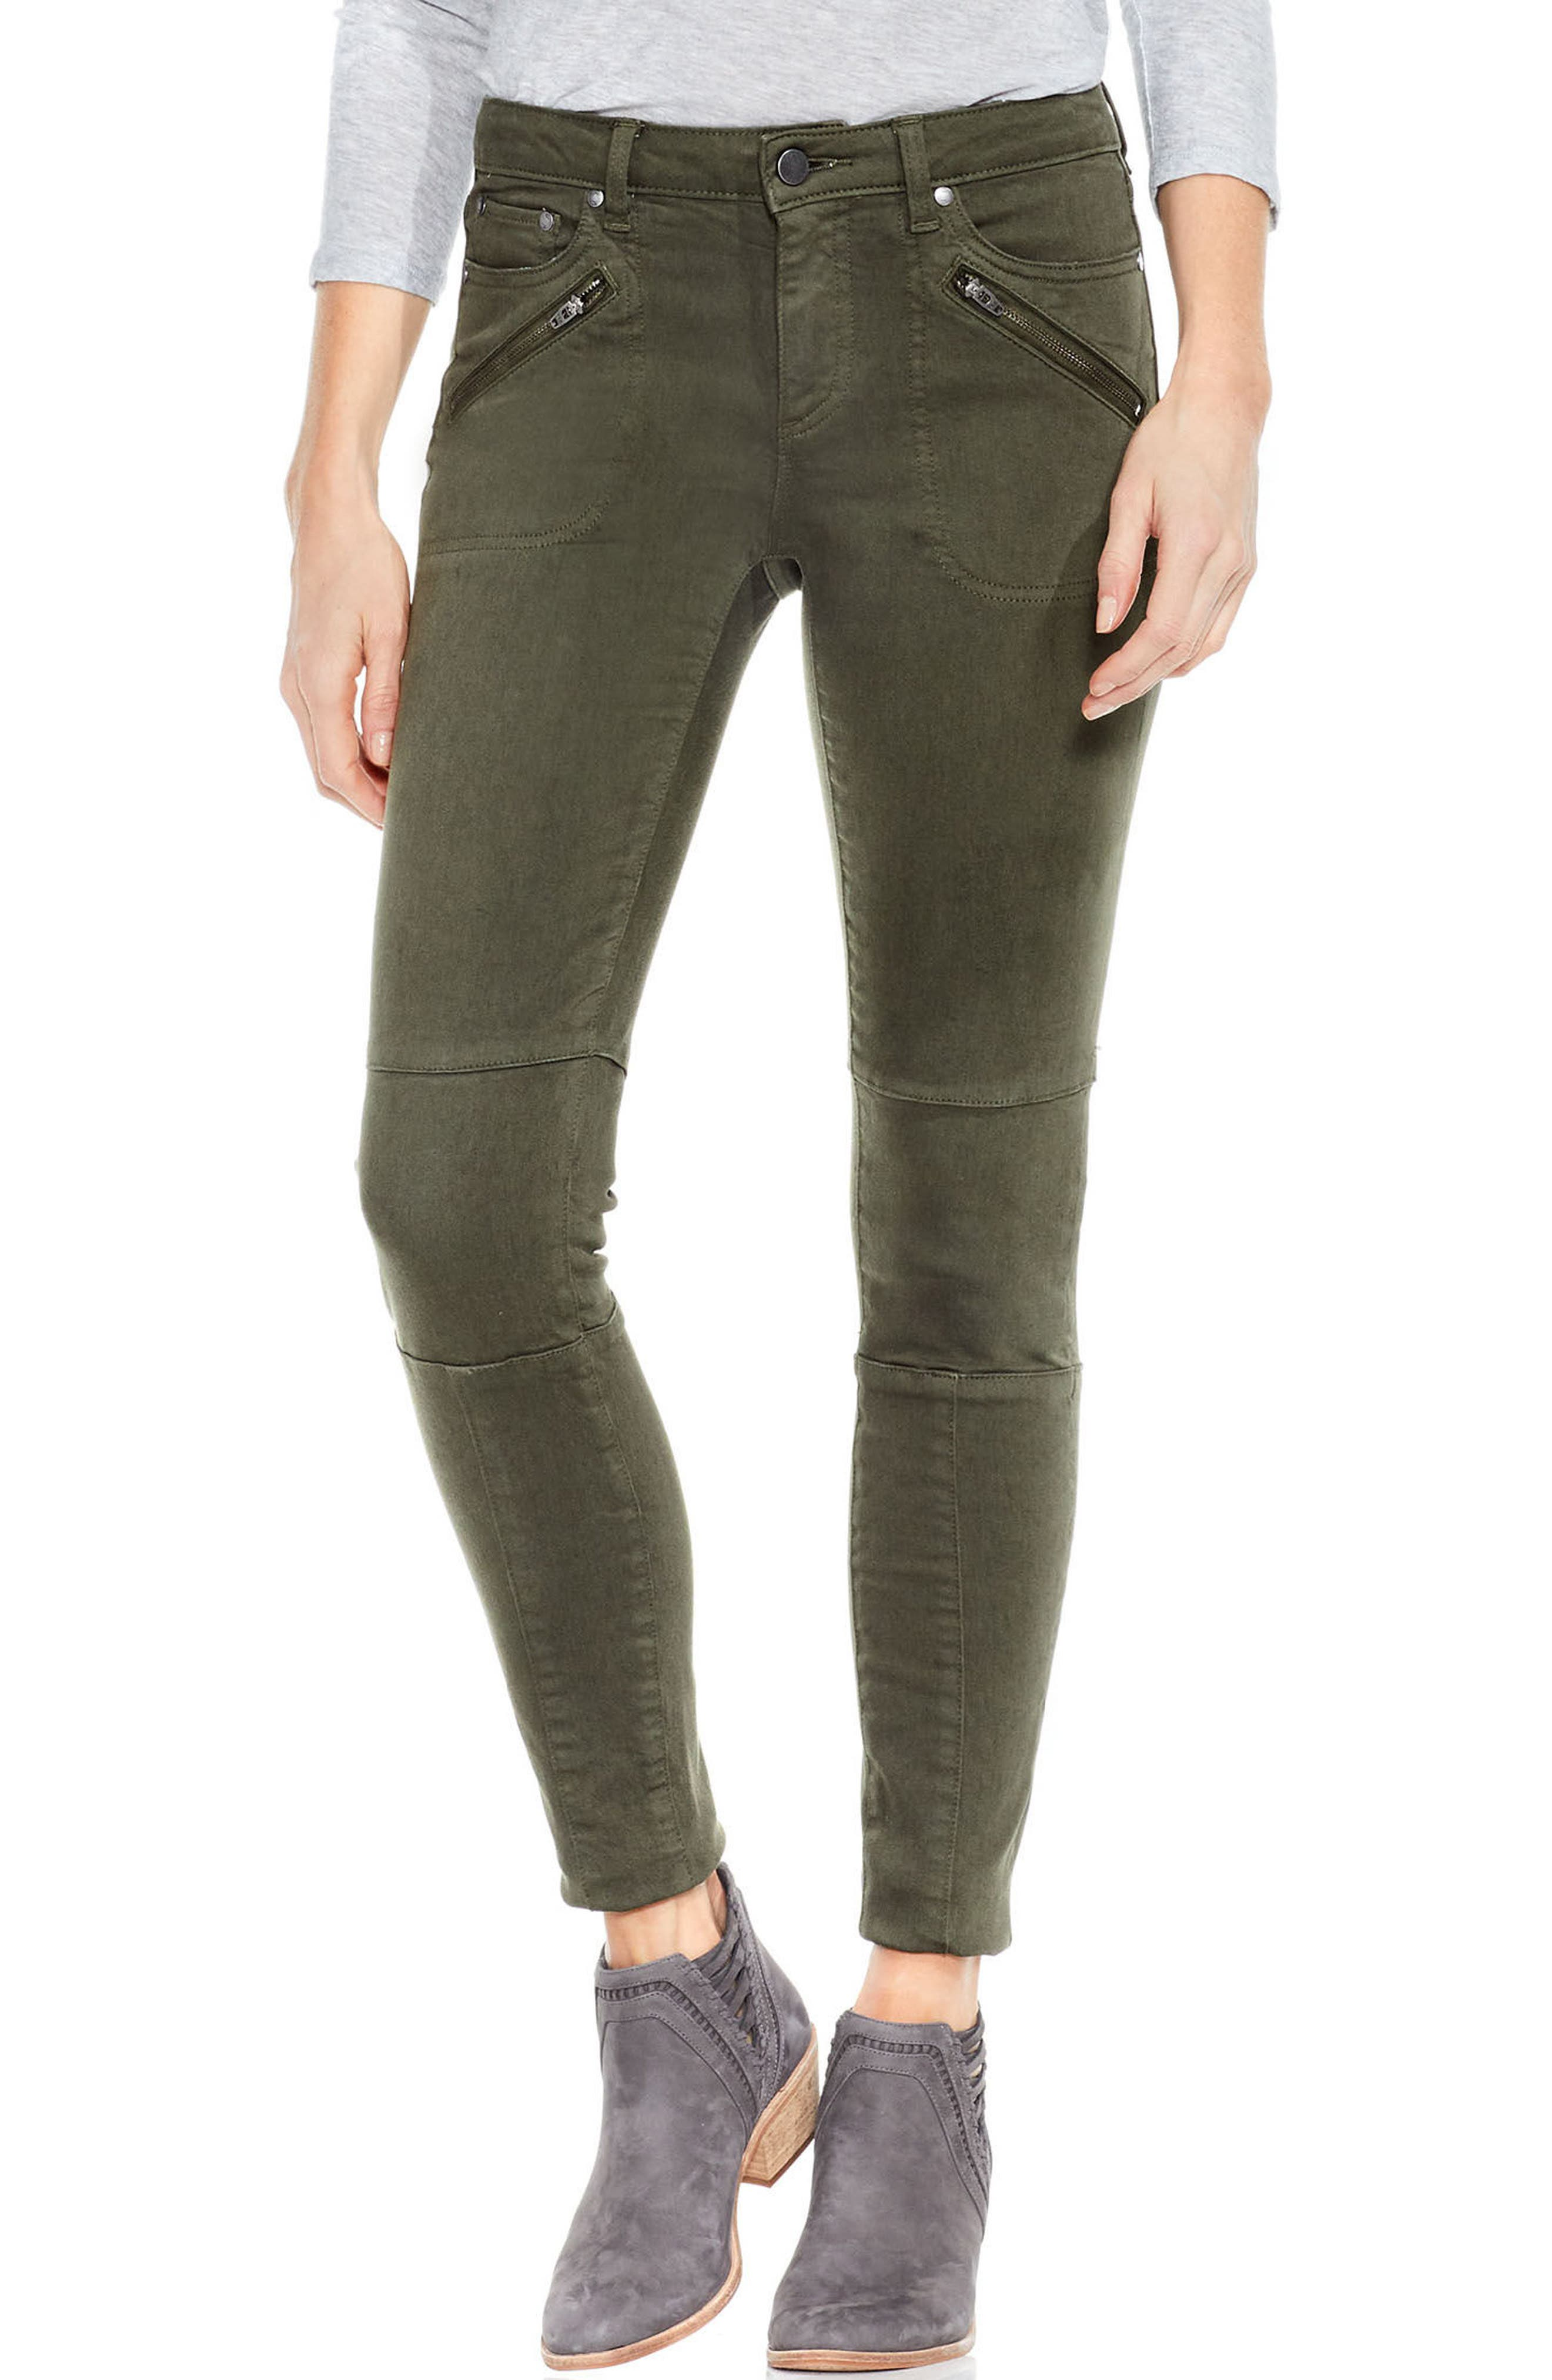 D-Luxe Moto Skinny Jeans In Army Green in Military Green